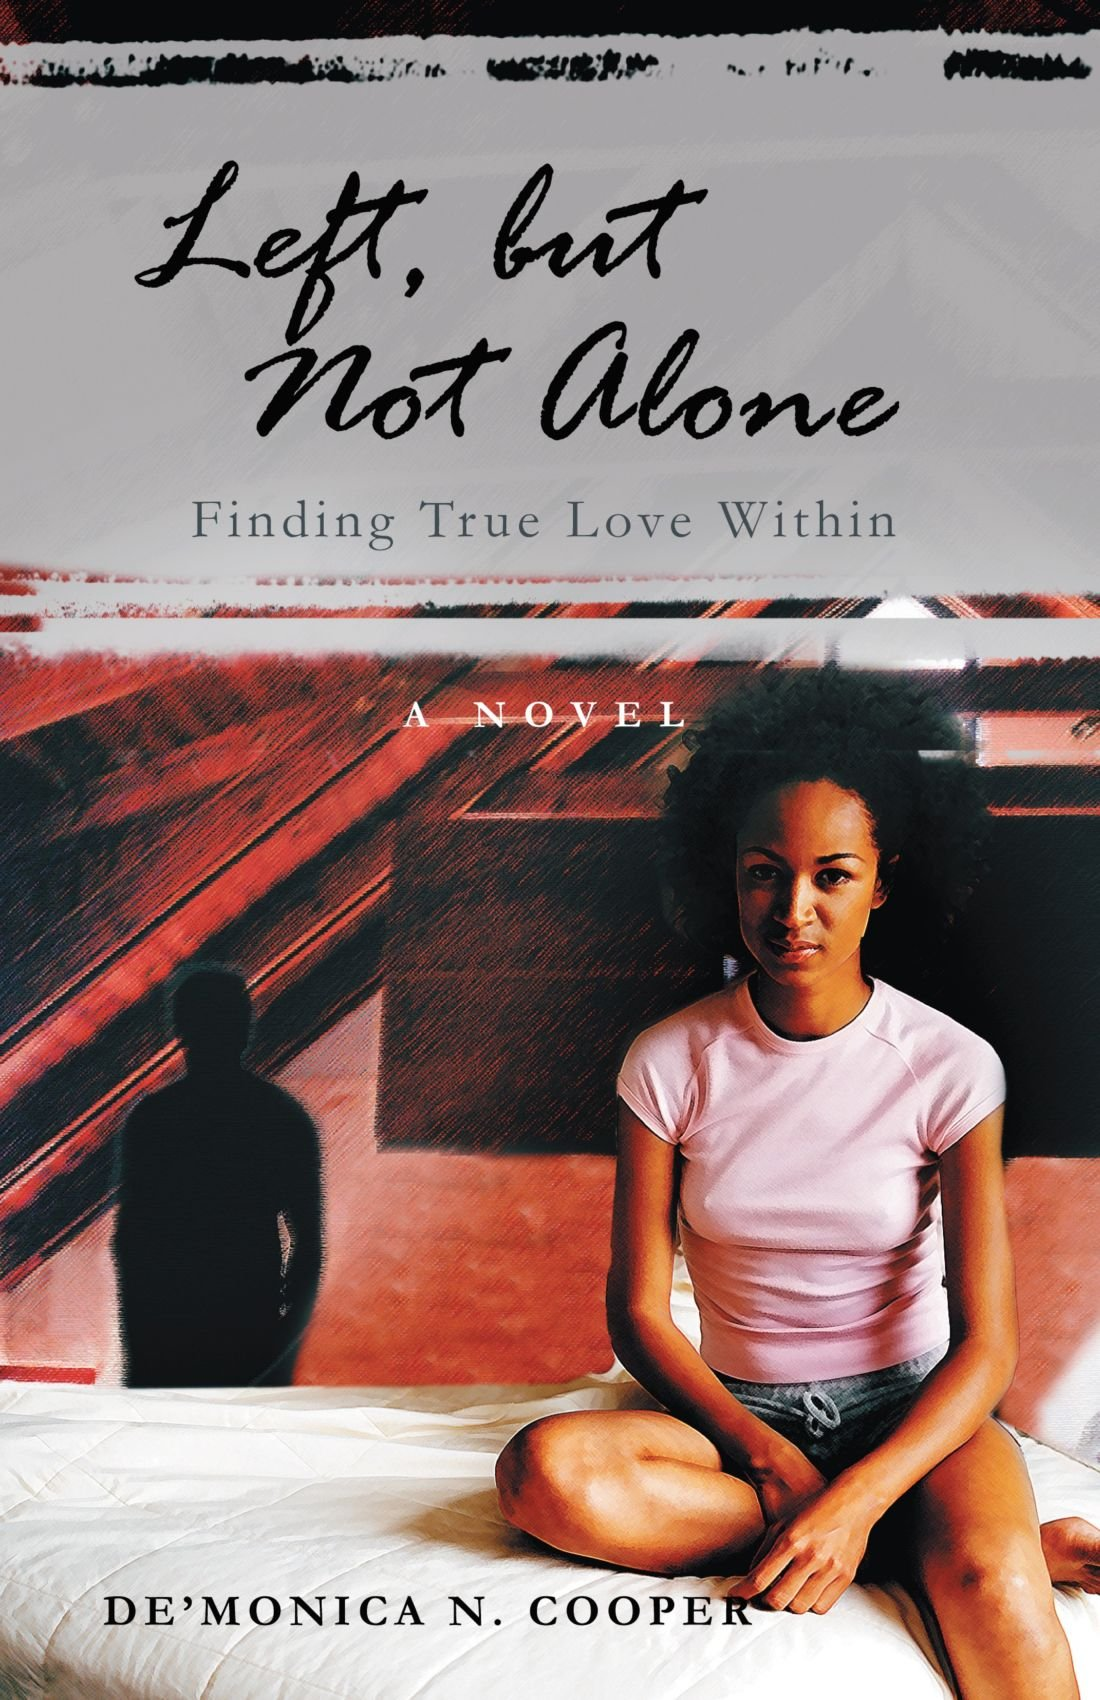 Left, but Not Alone: Finding True Love Within